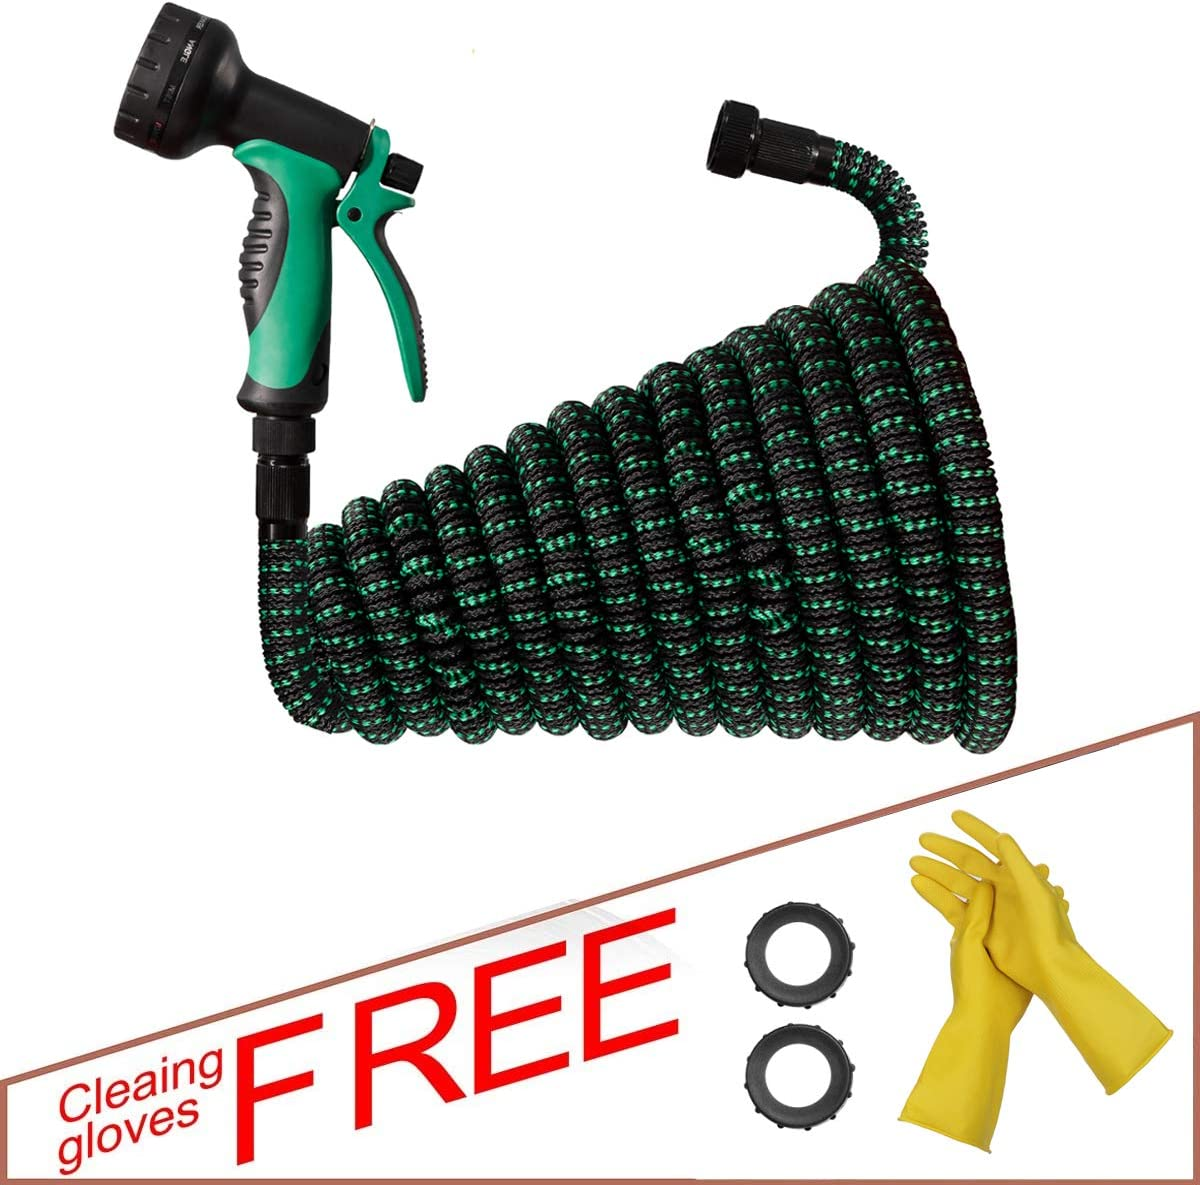 EQI Expandable Garden Hose 25 + 5 ft, 10 Function Hose Nozzle with Flexible Water Hose, Lightweight 3750D Fabric Retractable Hose 25 + 5 Feet with 3/4'' Aluminum Alloy Connector 3 Layers Latex Core